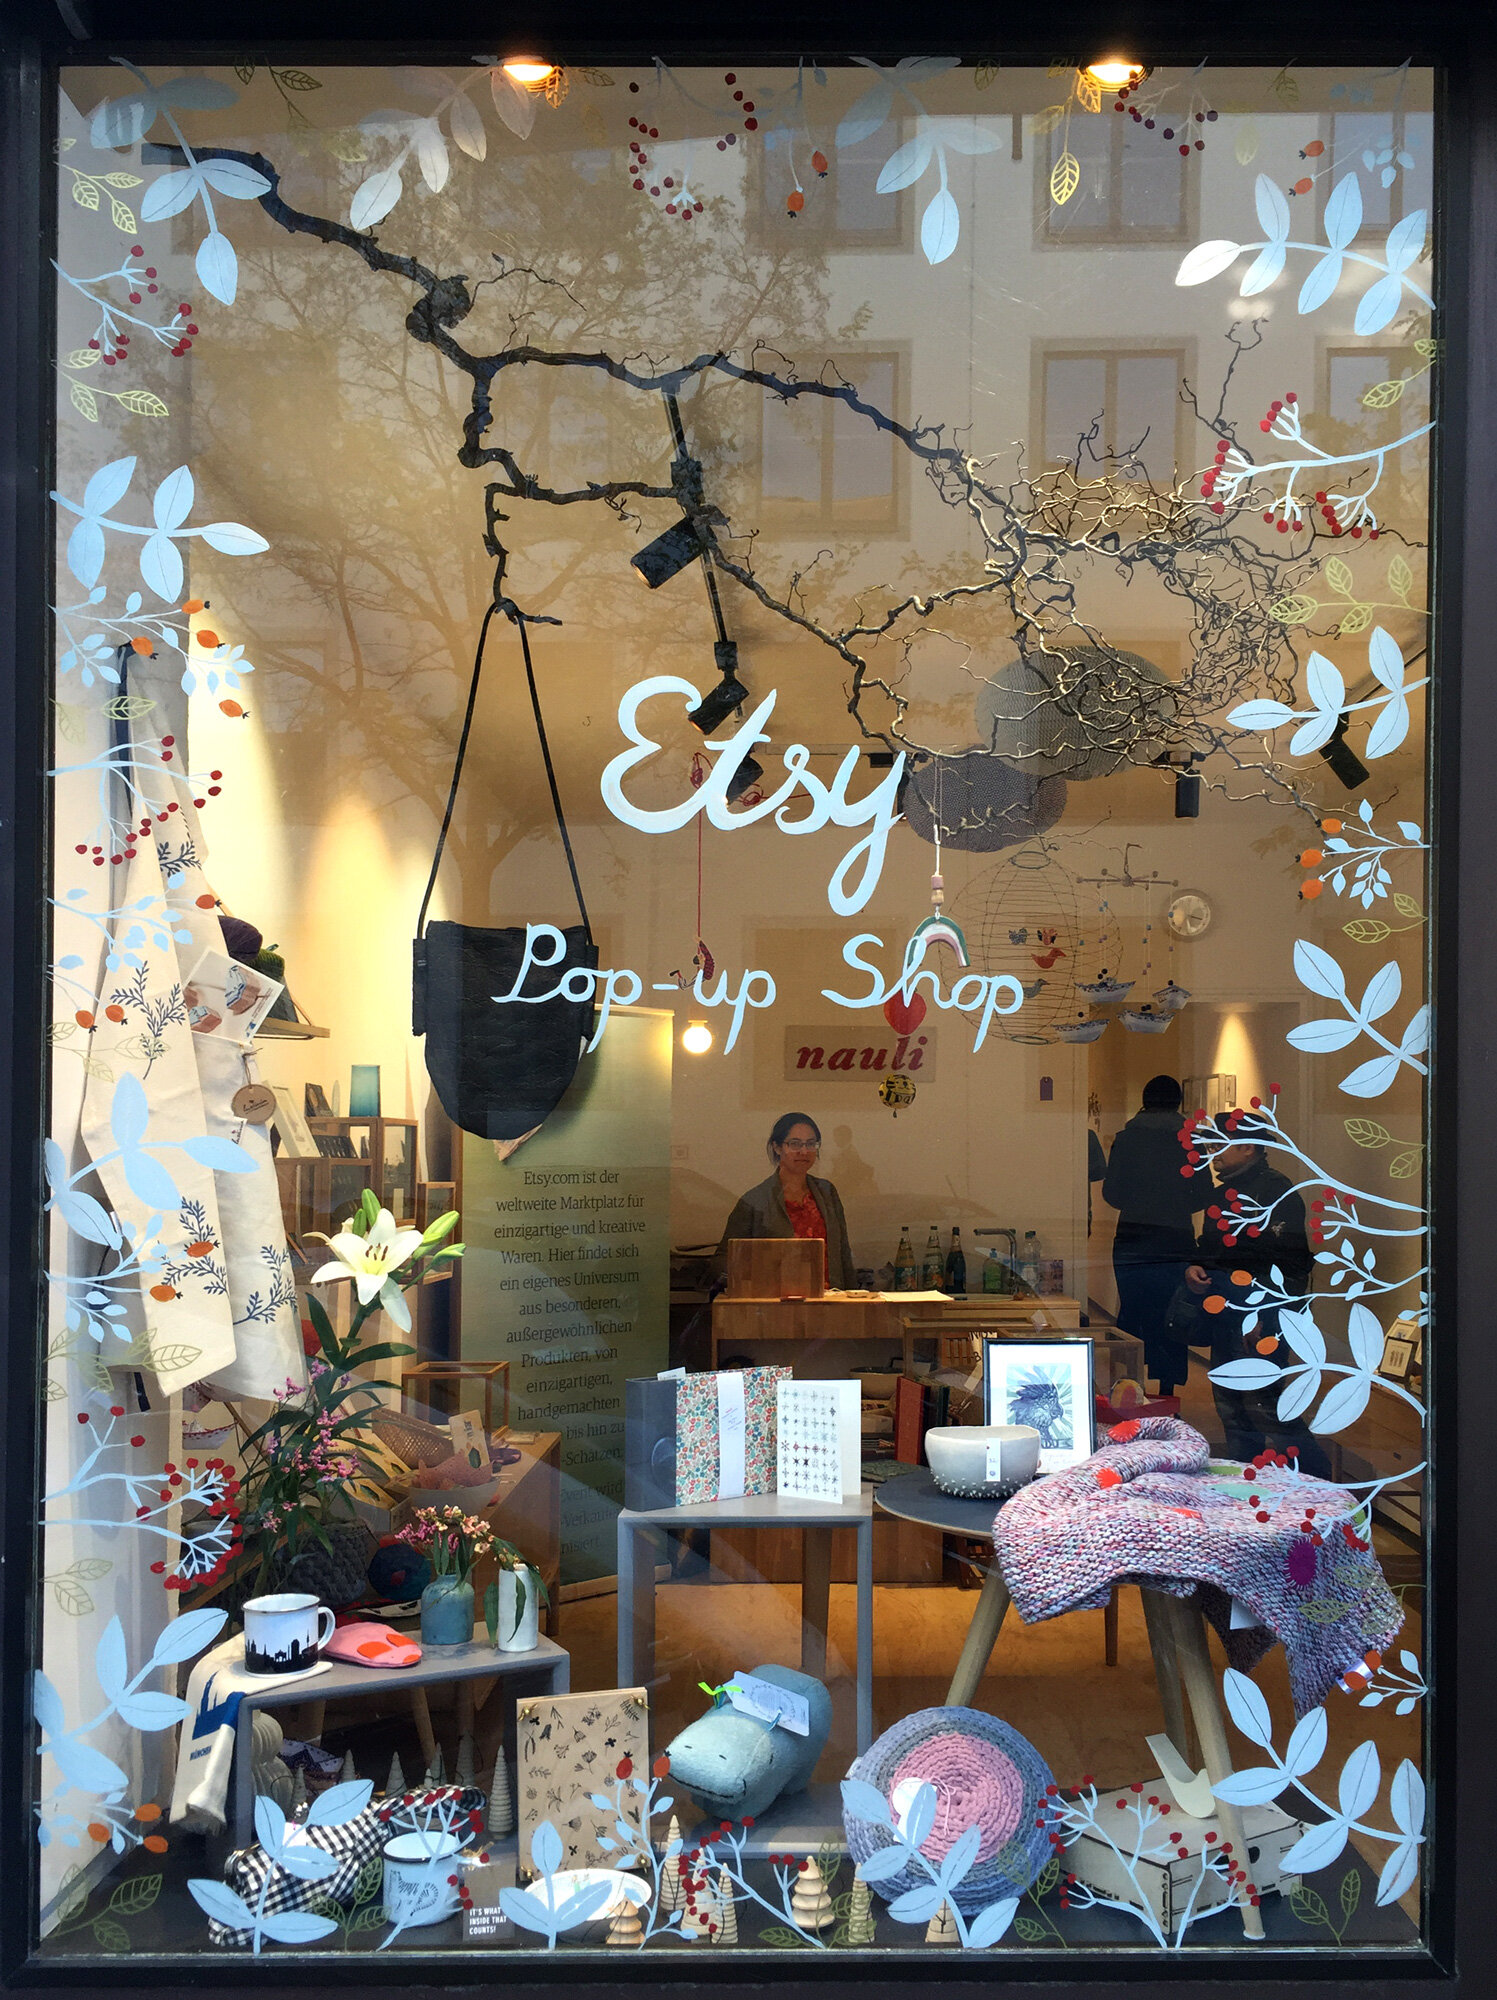 etsy-pop-up-shop-maria-over.jpg